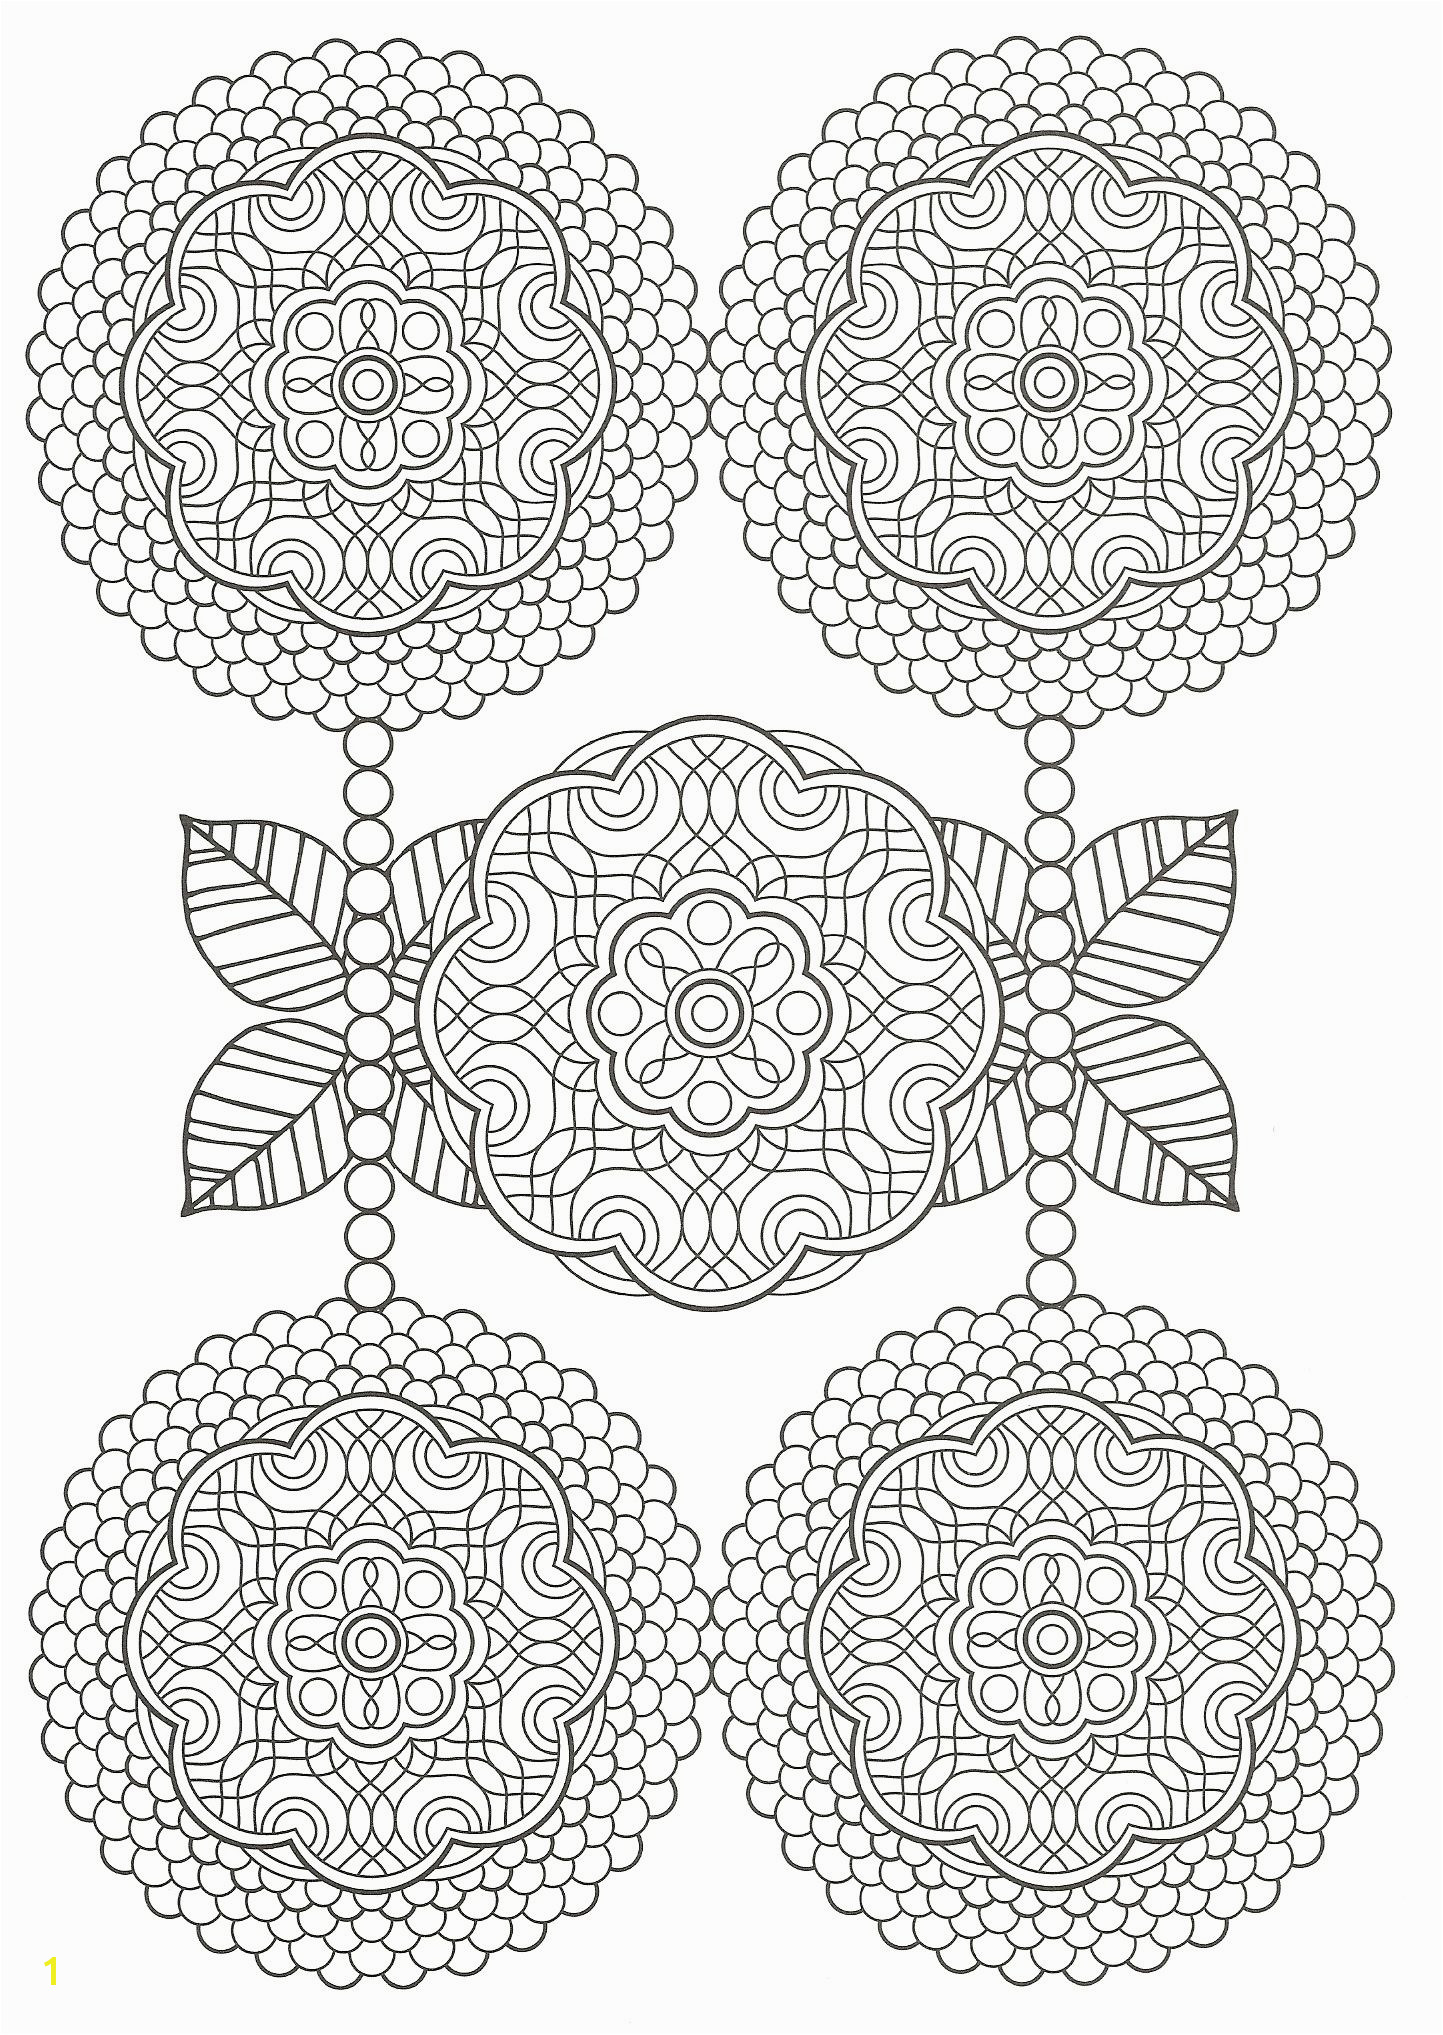 Printed Pages Mandala Coloring Sharpies Coloring Book Pages Precious Moments Page